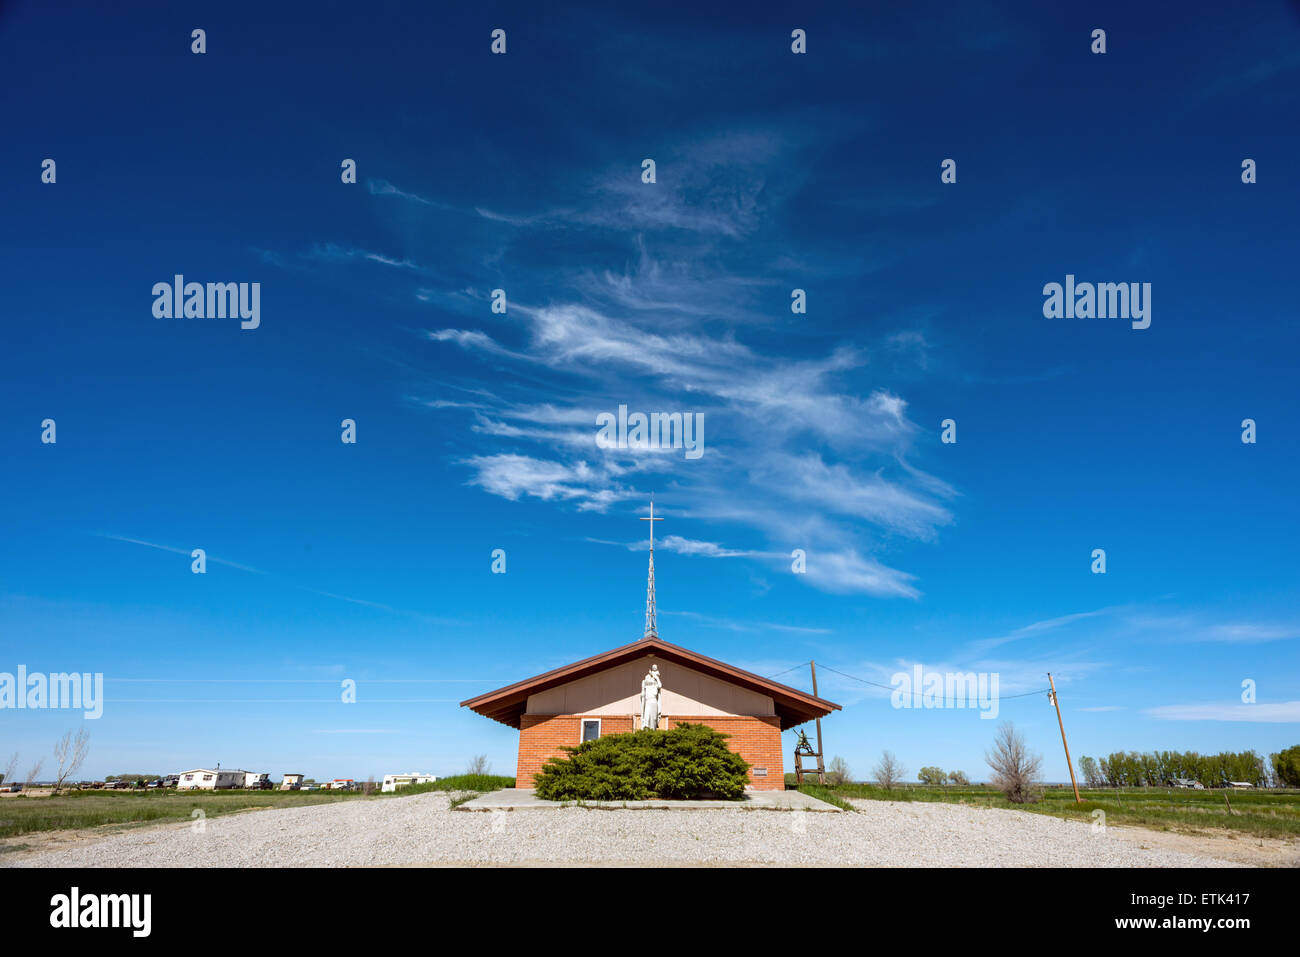 Church building in rural Wyoming USA Stock Photo